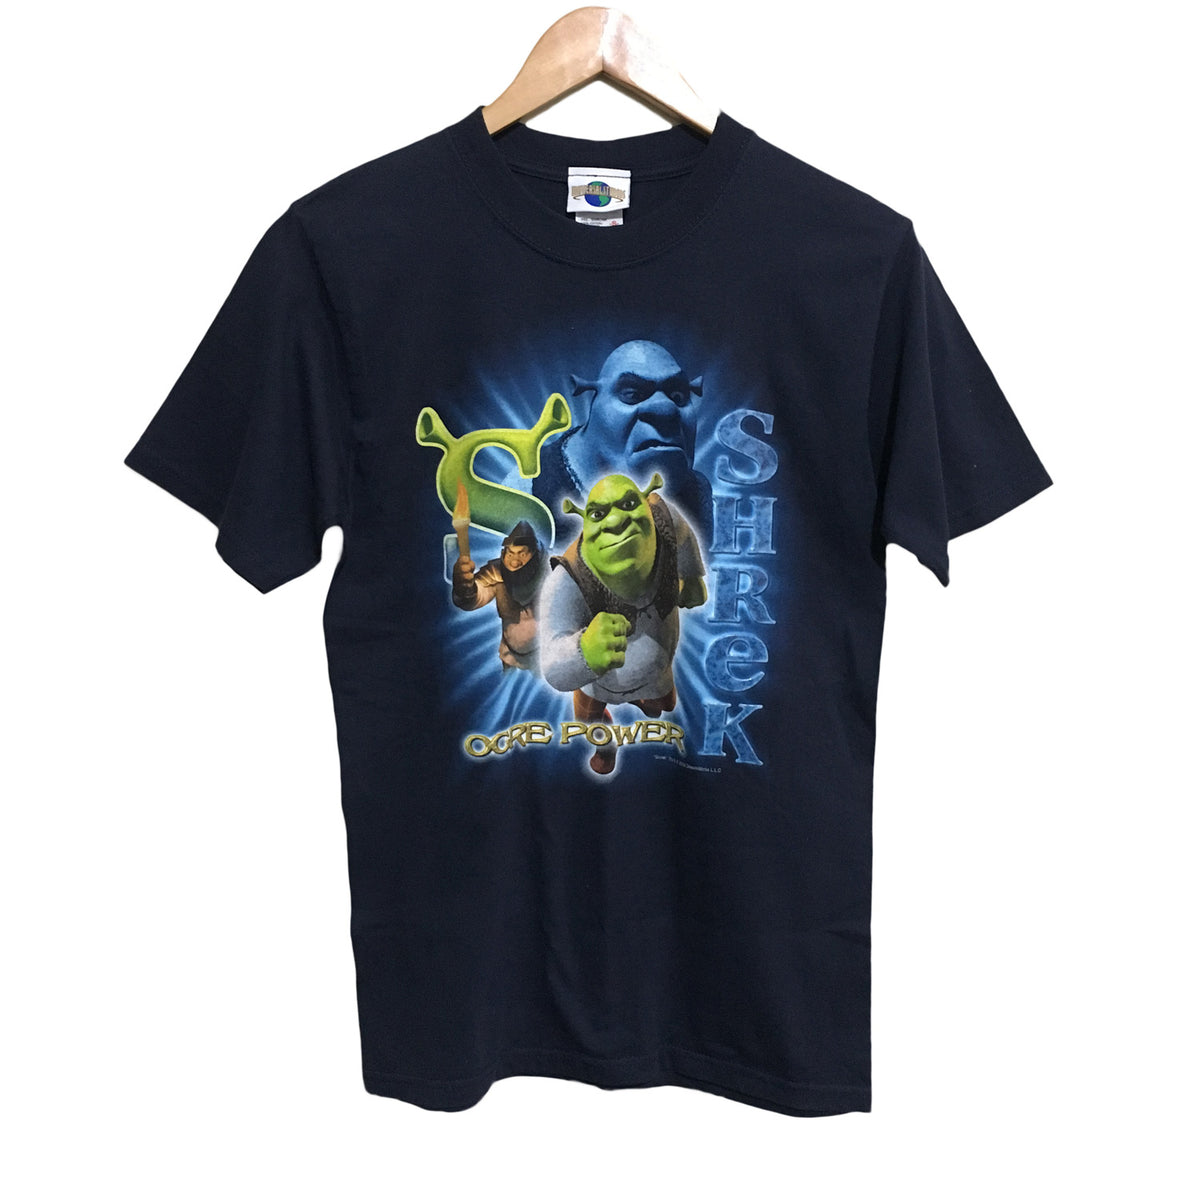 Shrek Dreamworks Universal Studios 2003 T-Shirt Mens Small